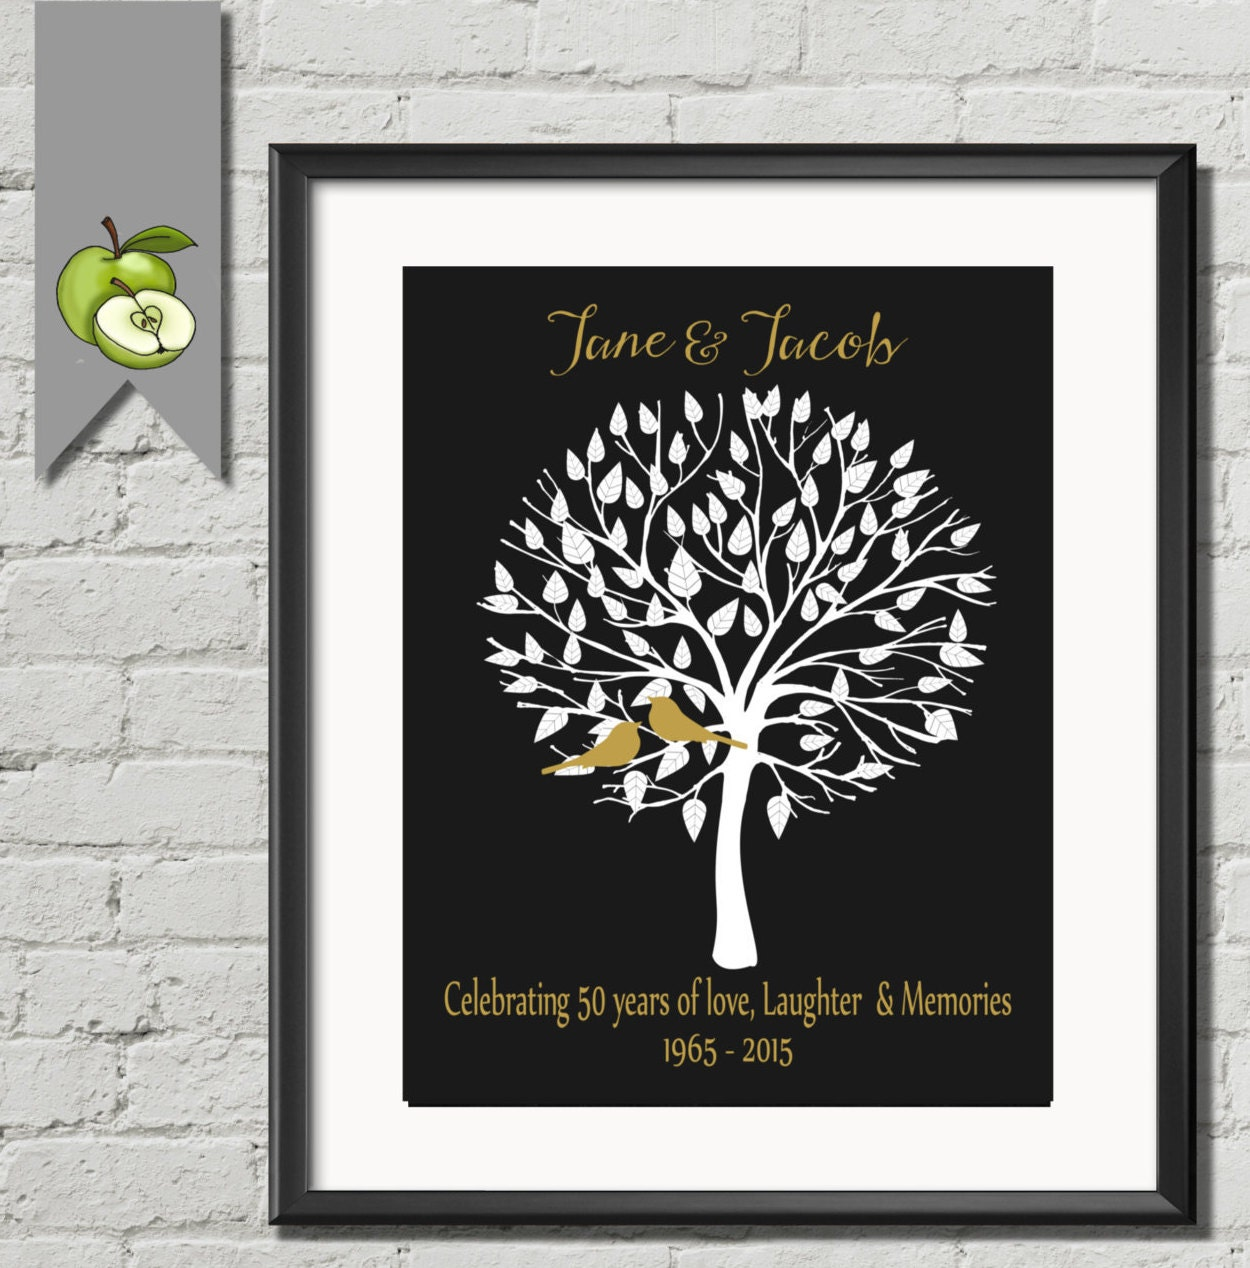 Golden Wedding Anniversary Gifts For Parents Uk : Personalised 50th Anniversary Gift Idea GOLDEN Wedding